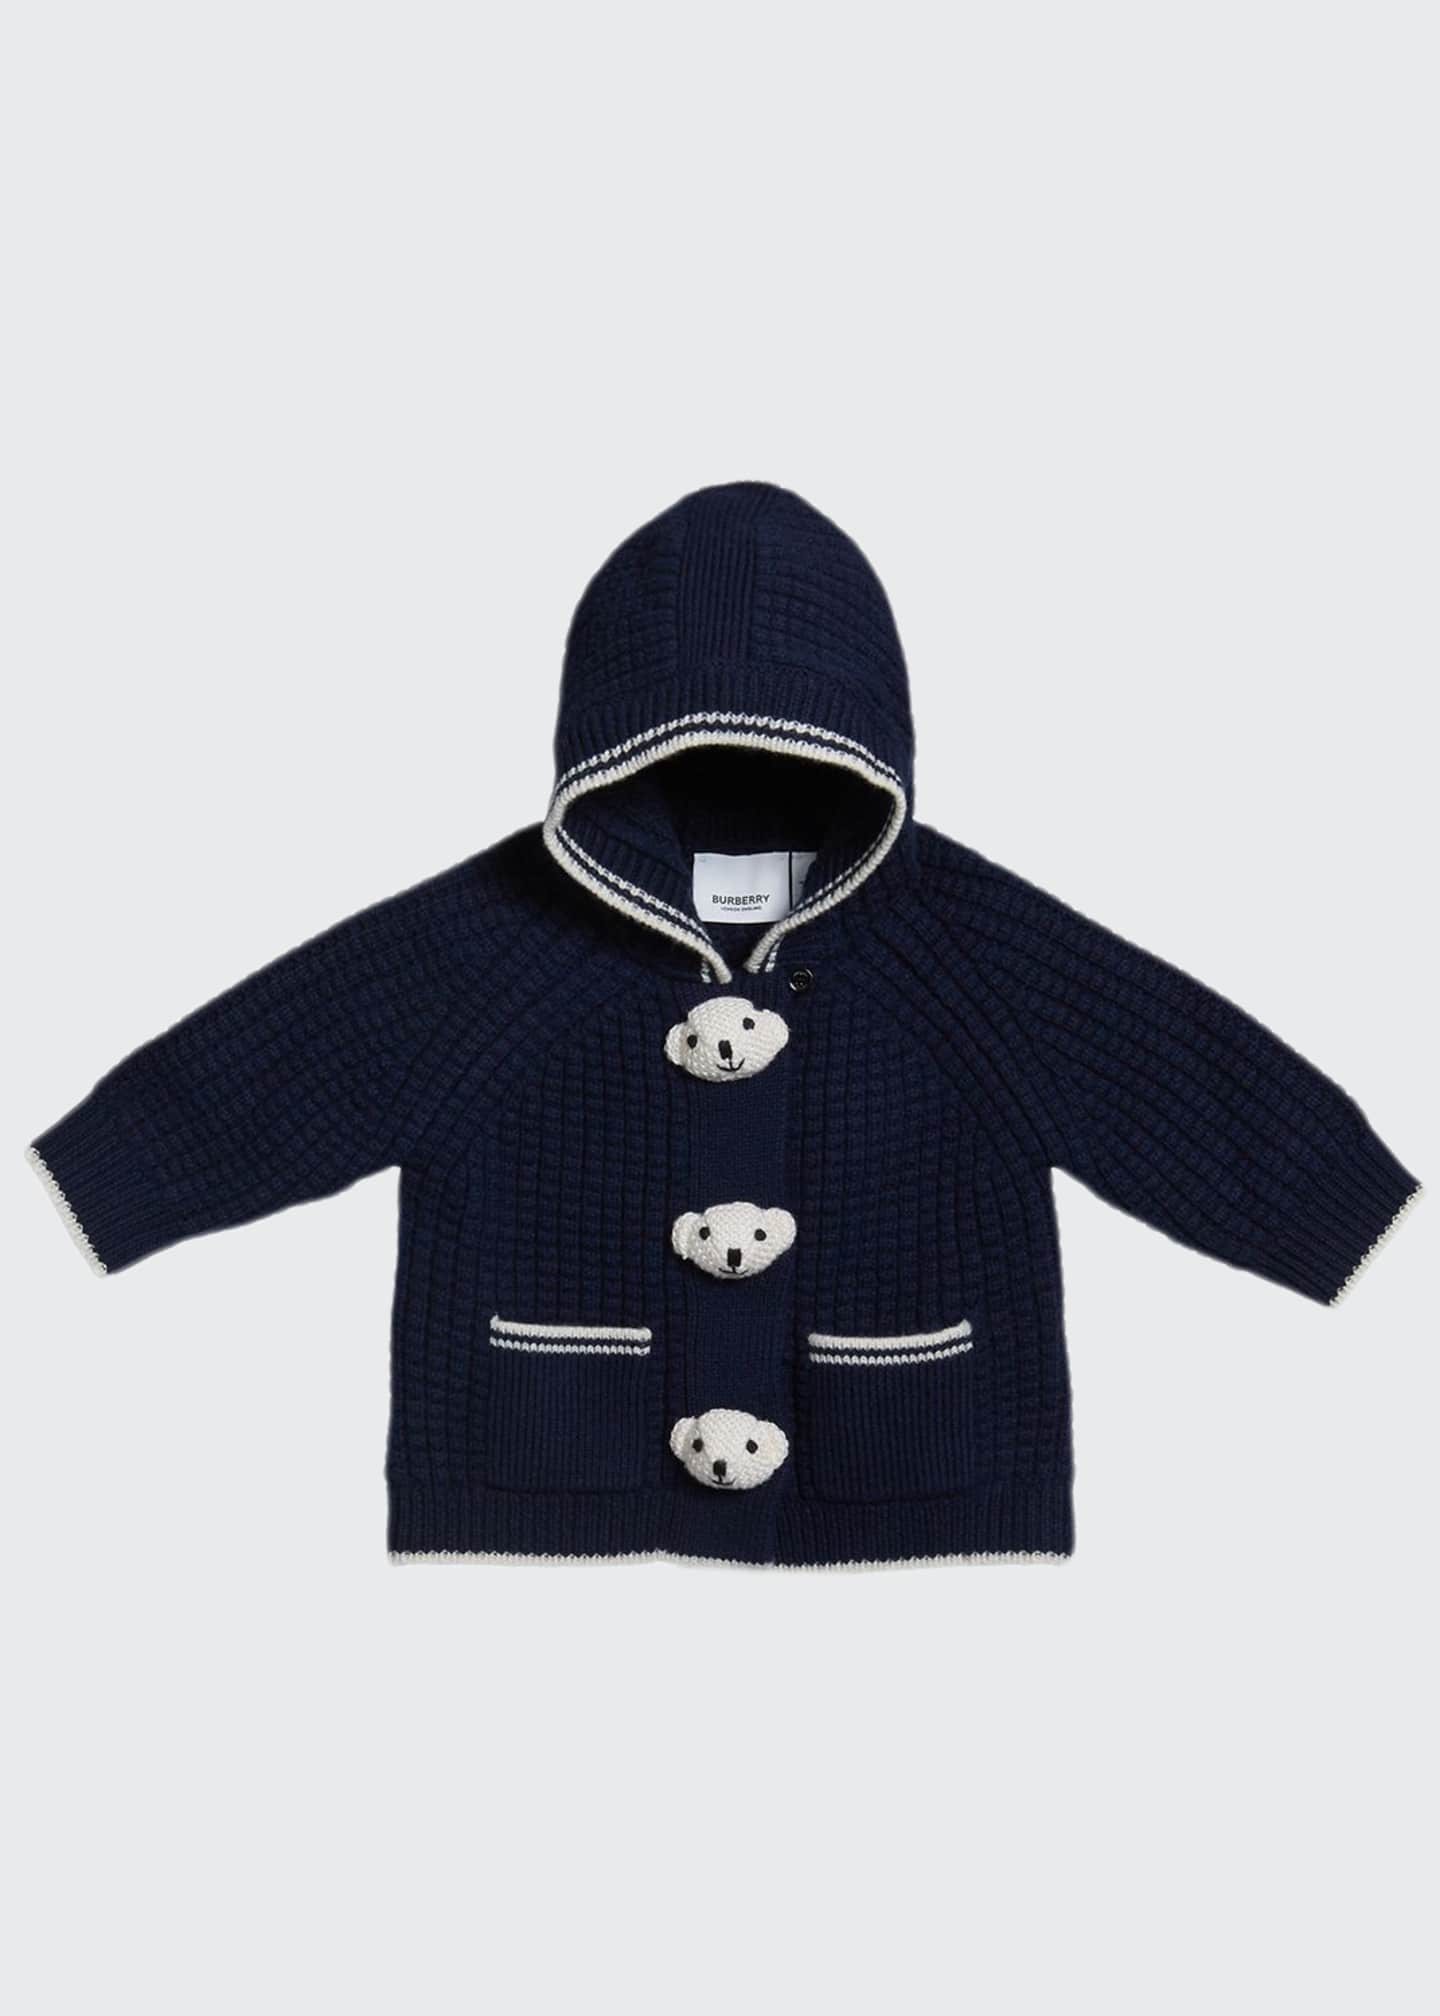 Burberry Boy's Knit Teddy Bear Jacket, Size 3-18